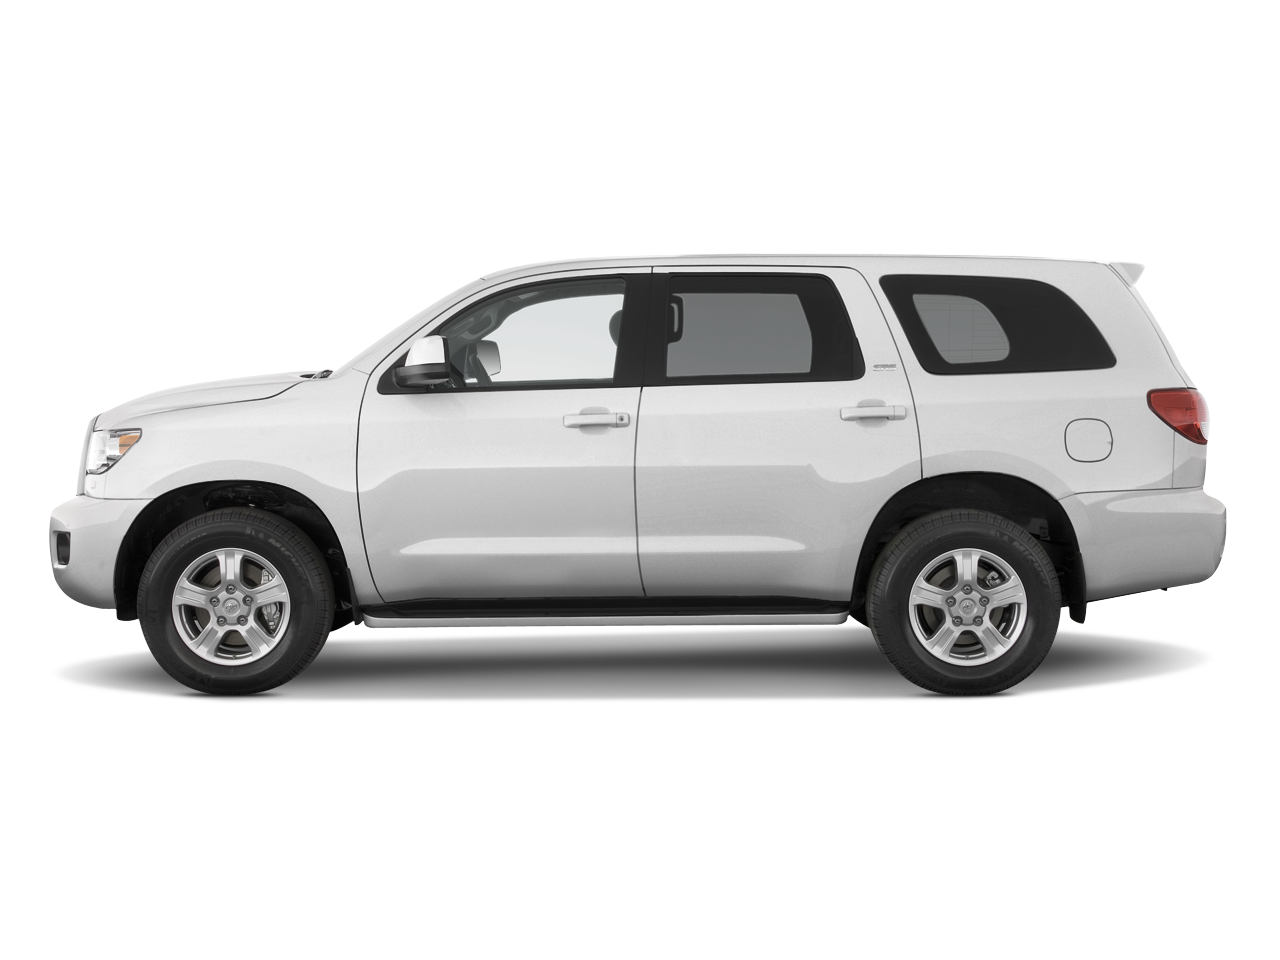 parison Toyota Sequoia Limited 2015 vs Subaru